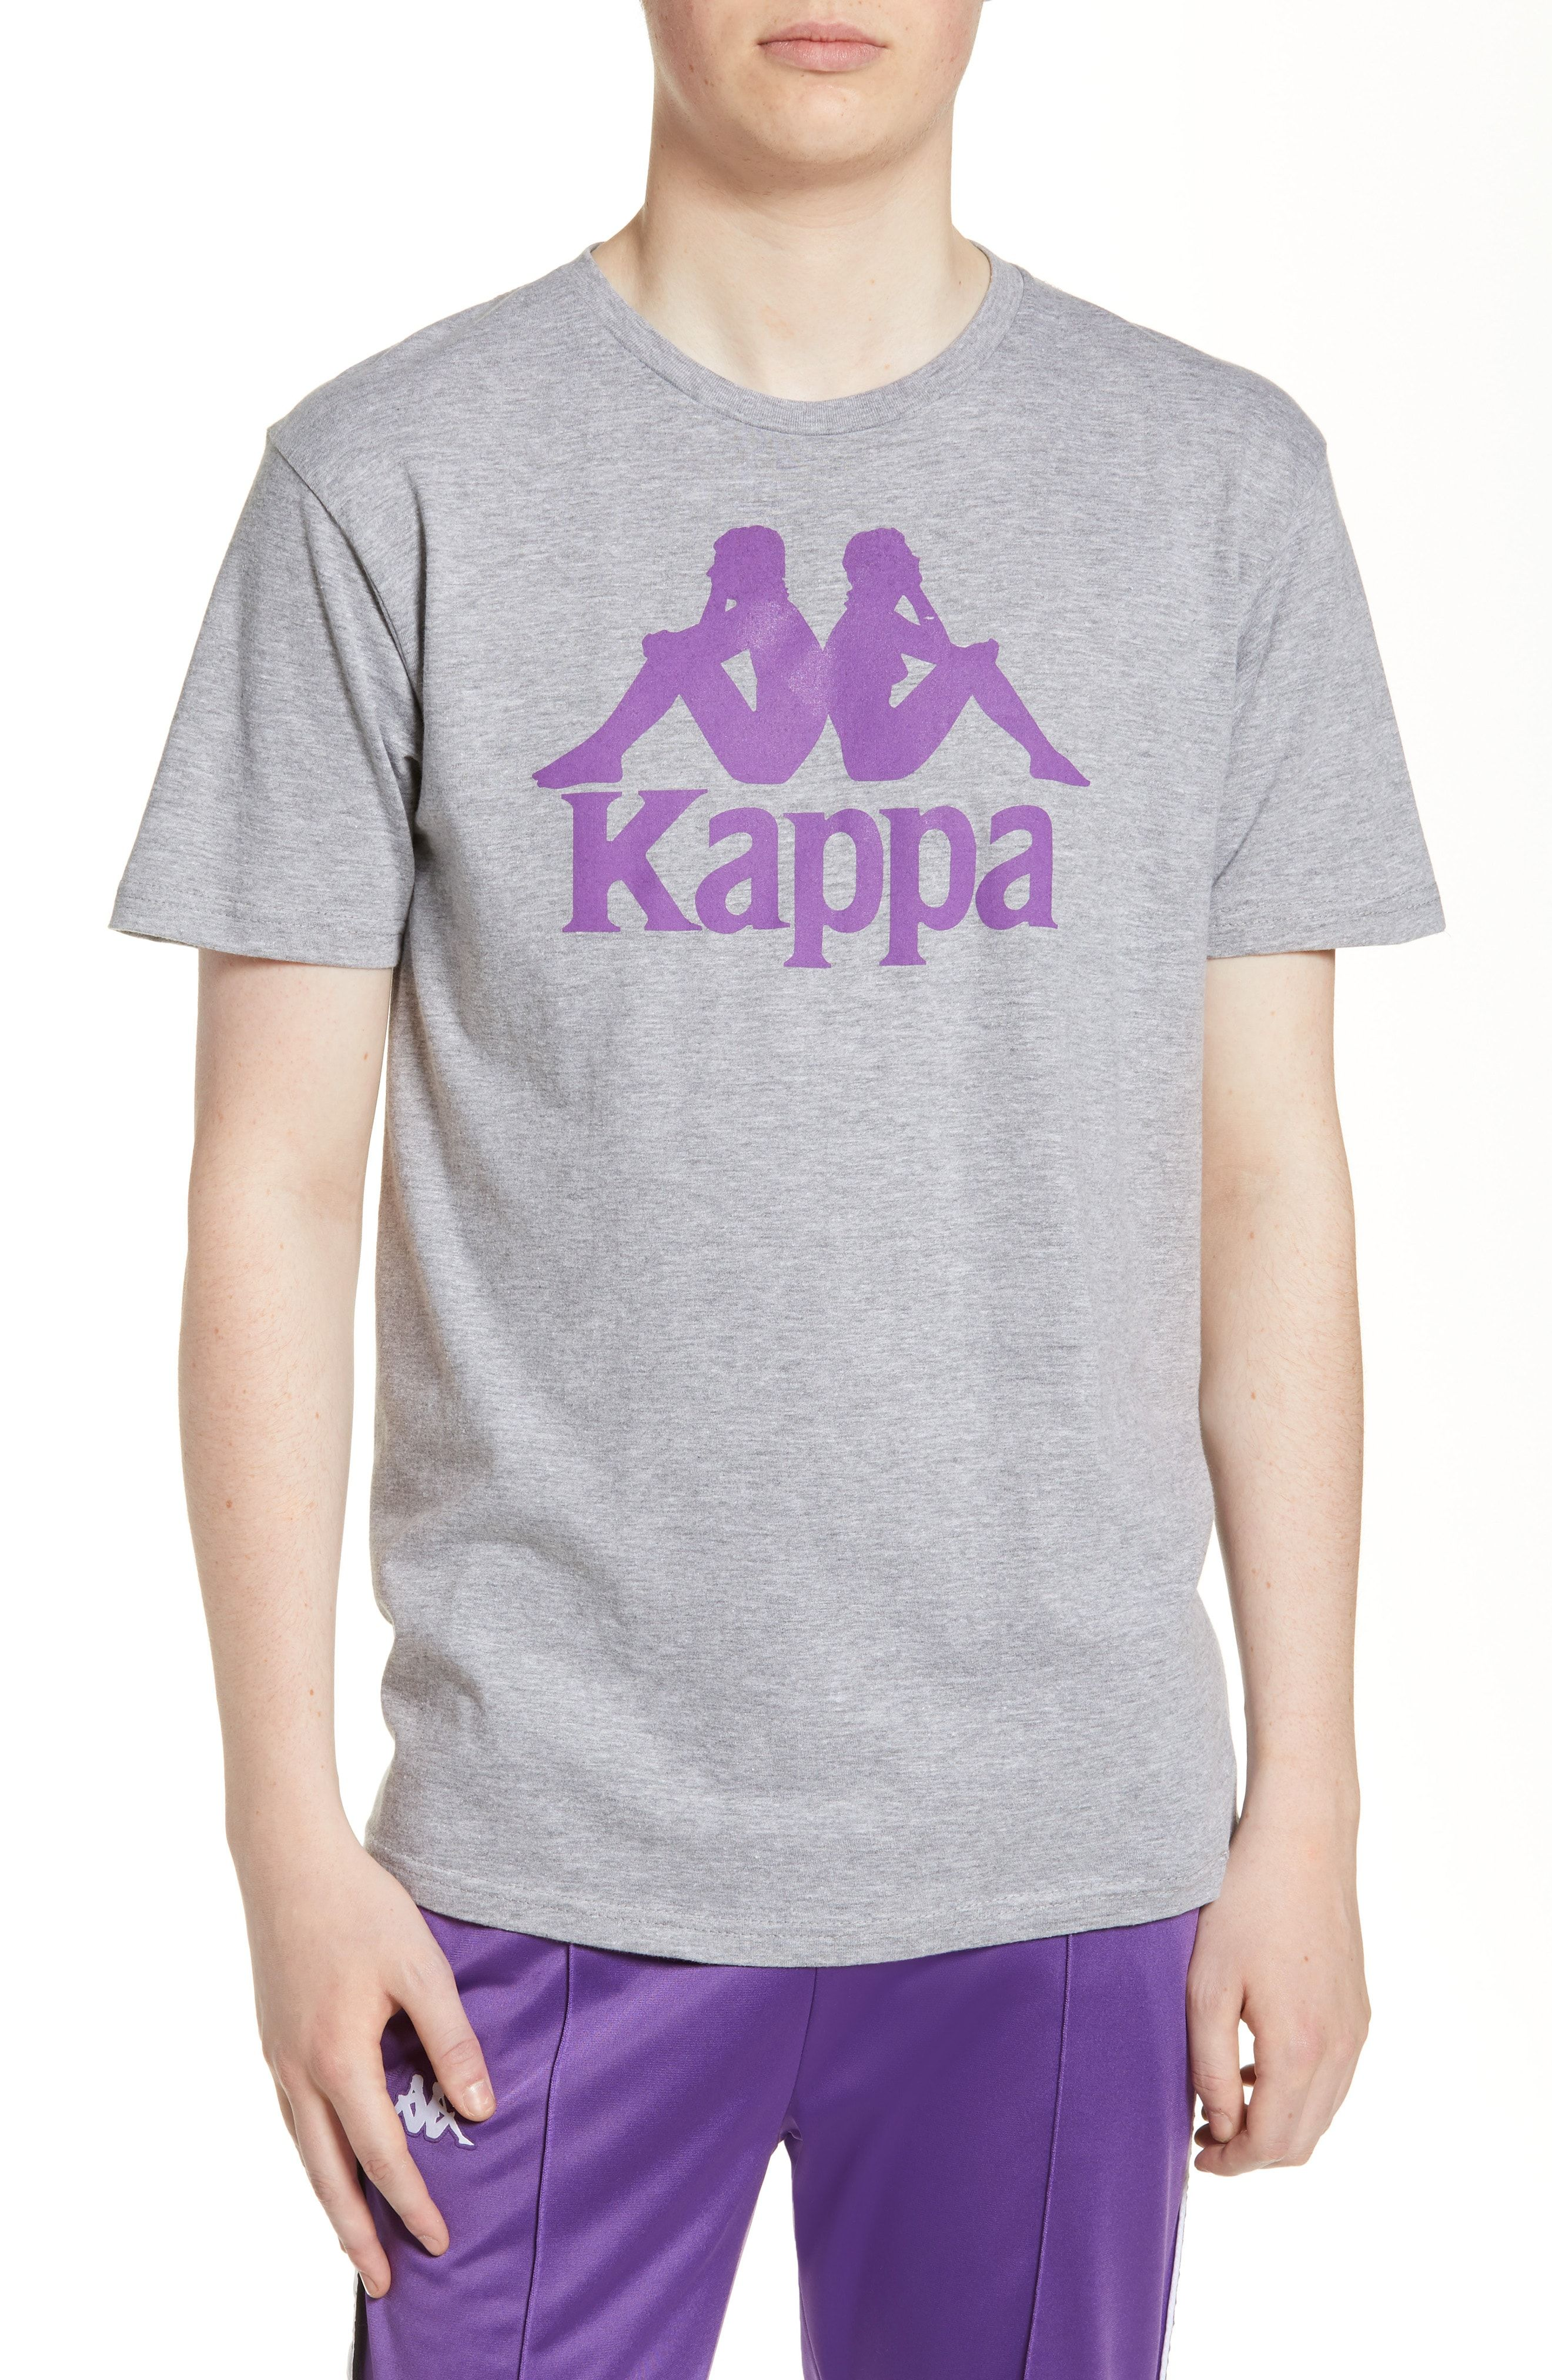 049583ab KAPPA AUTHENTIC ESTESSI LOGO T-SHIRT. #kappa #cloth | Kappa in 2019 ...